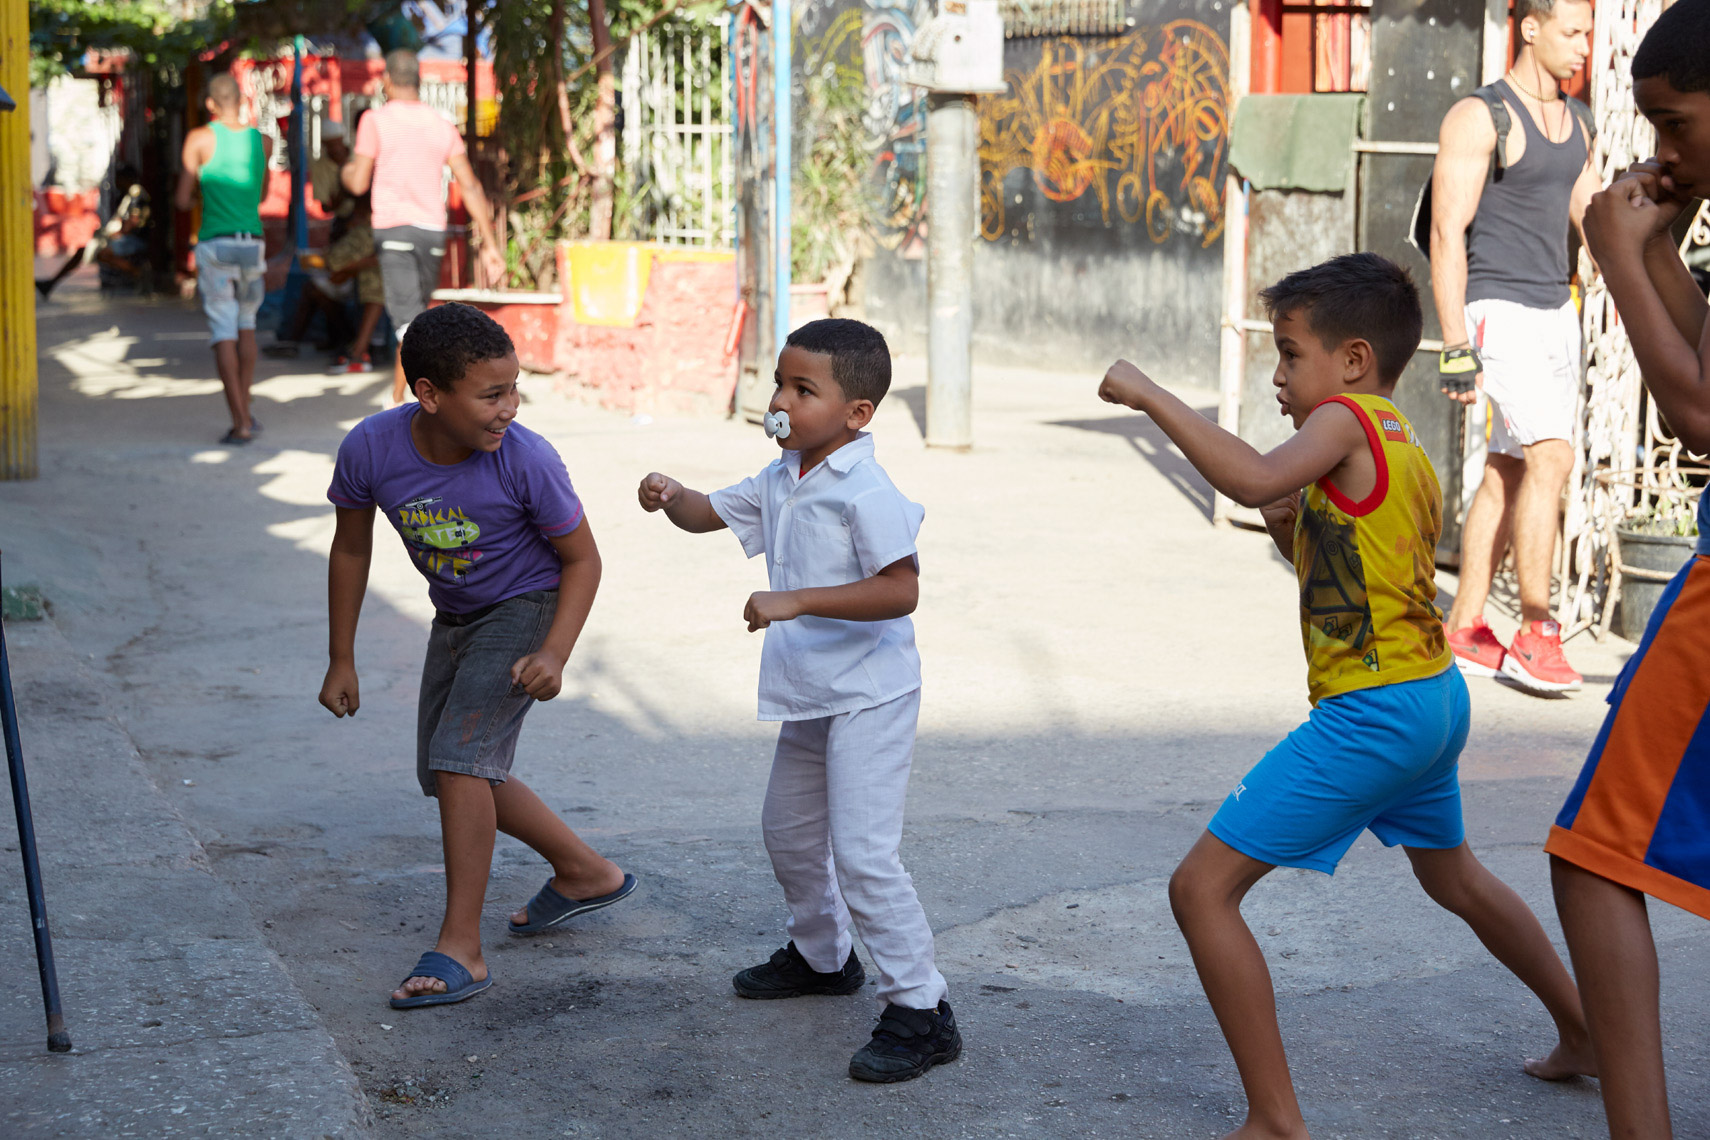 3 kids boxing in colorful alleyway in Cuba